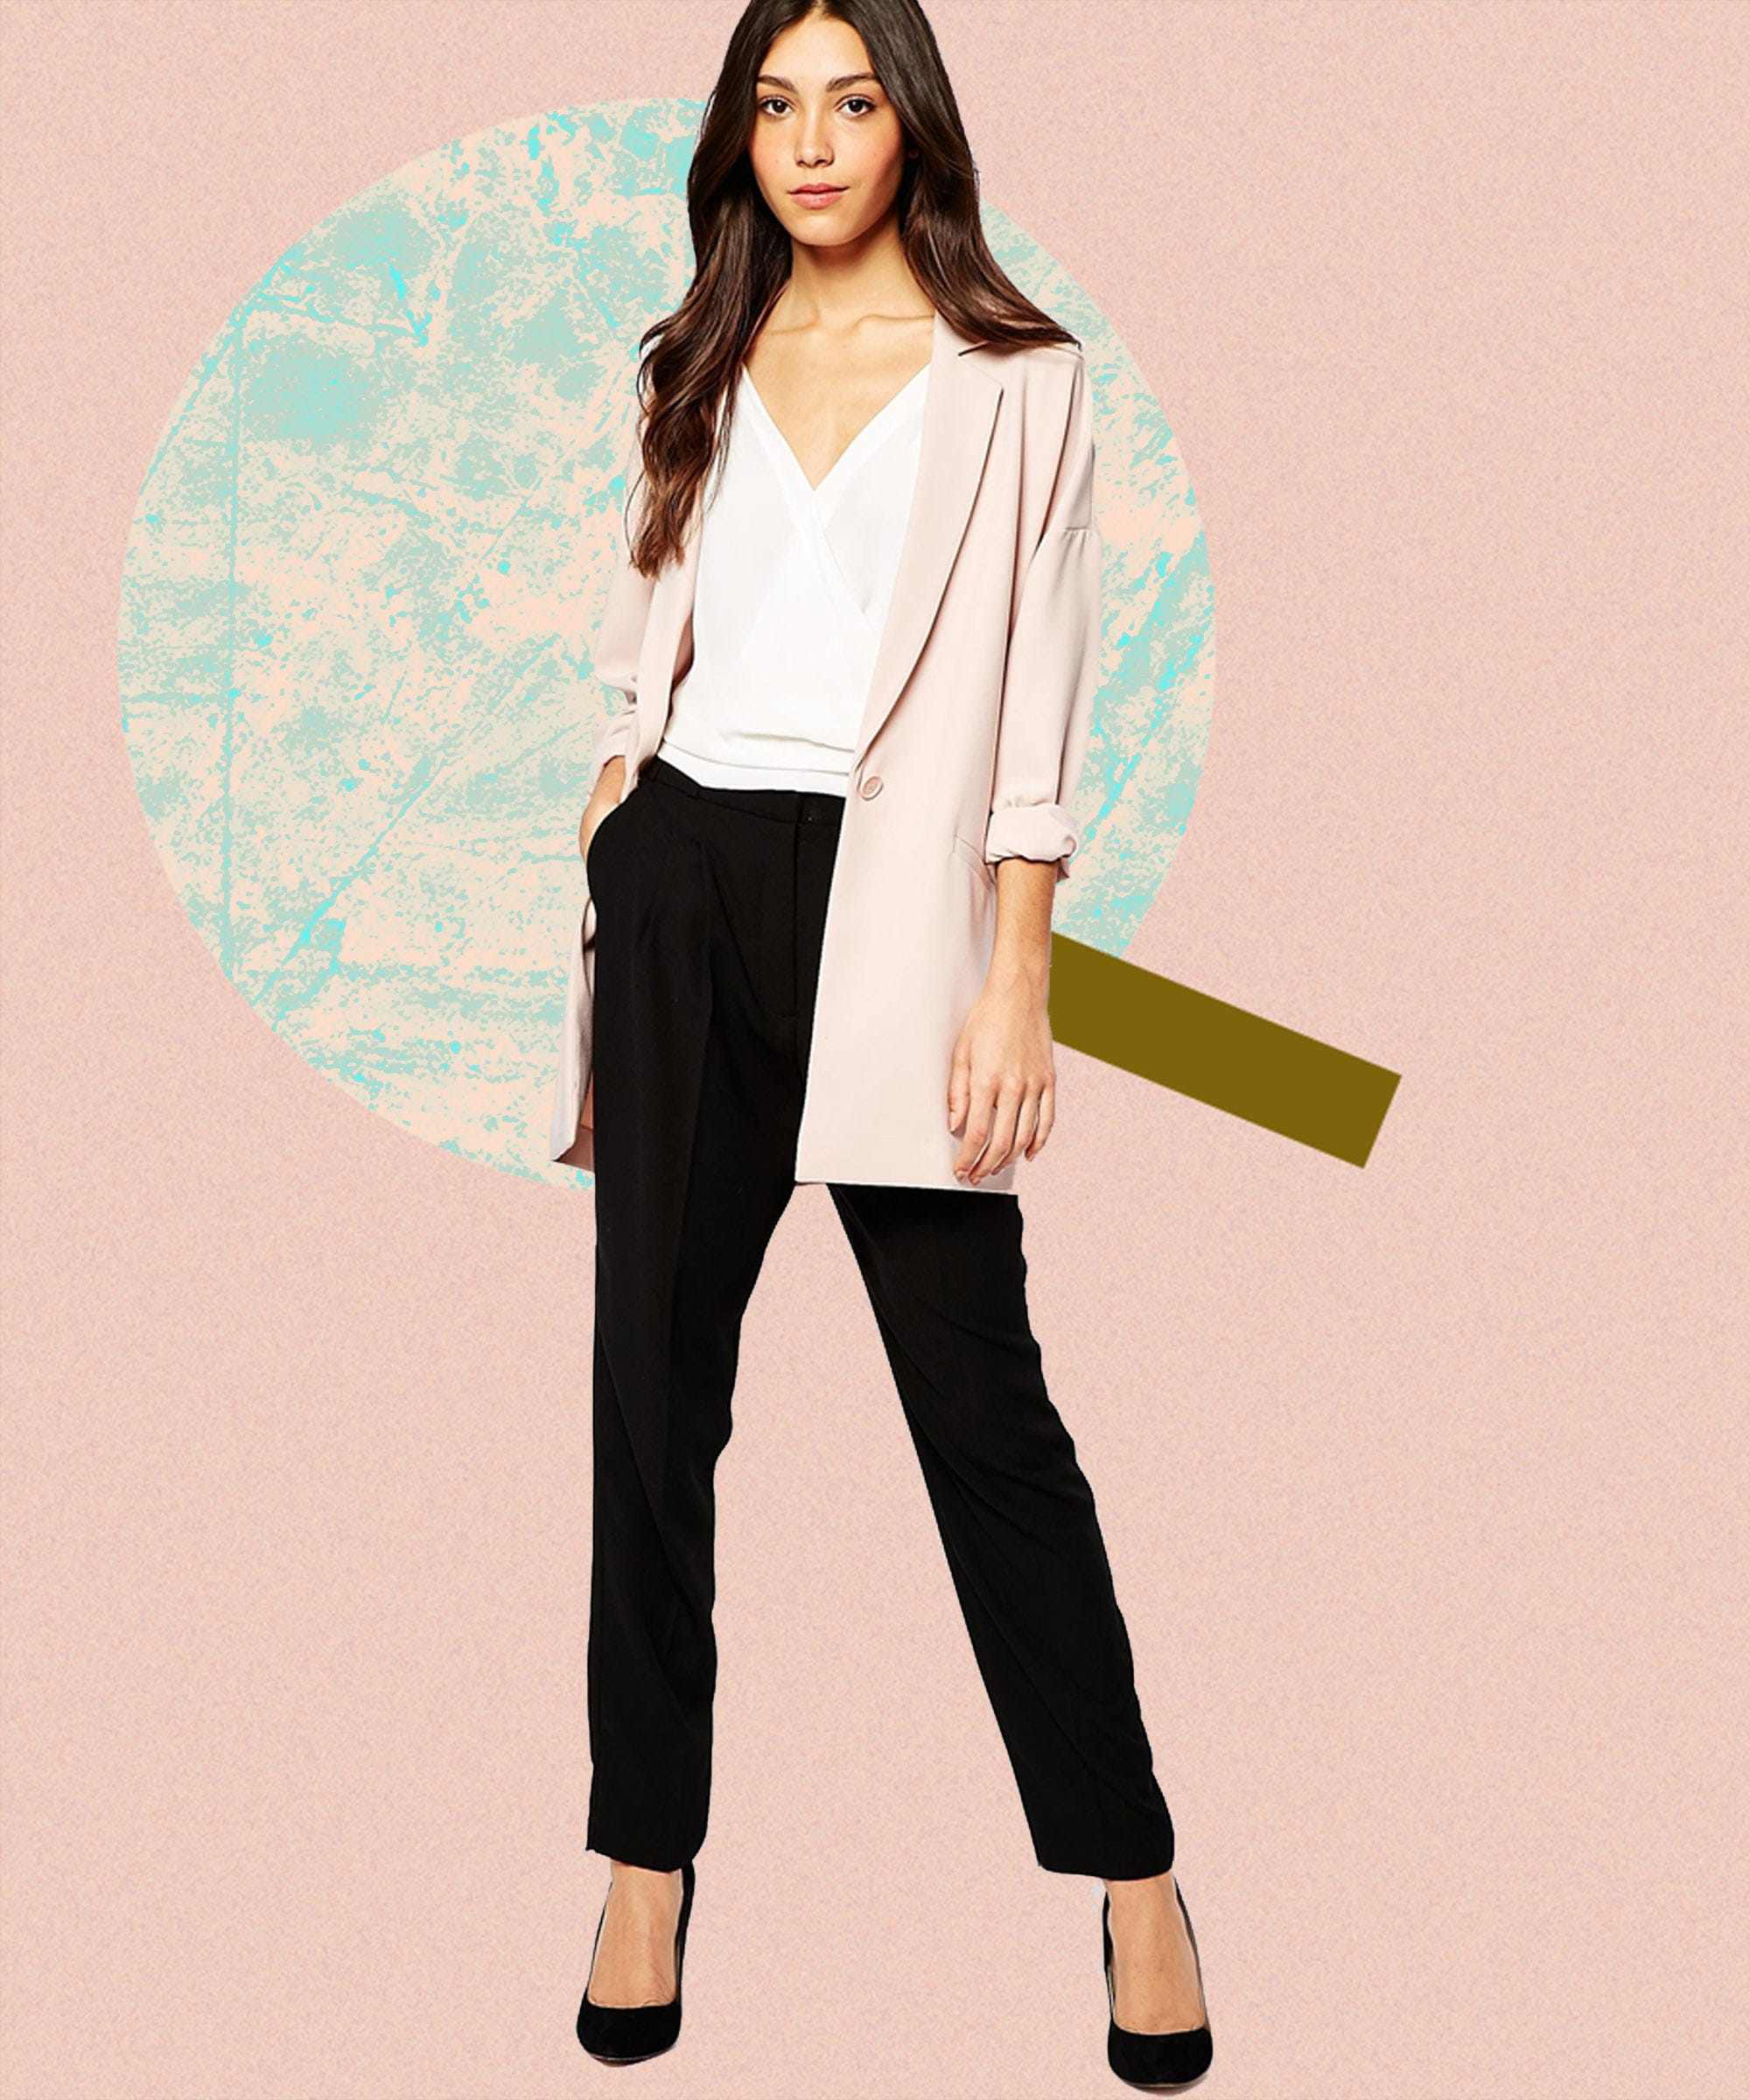 How To Dress For The Office Trendy Work Clothes